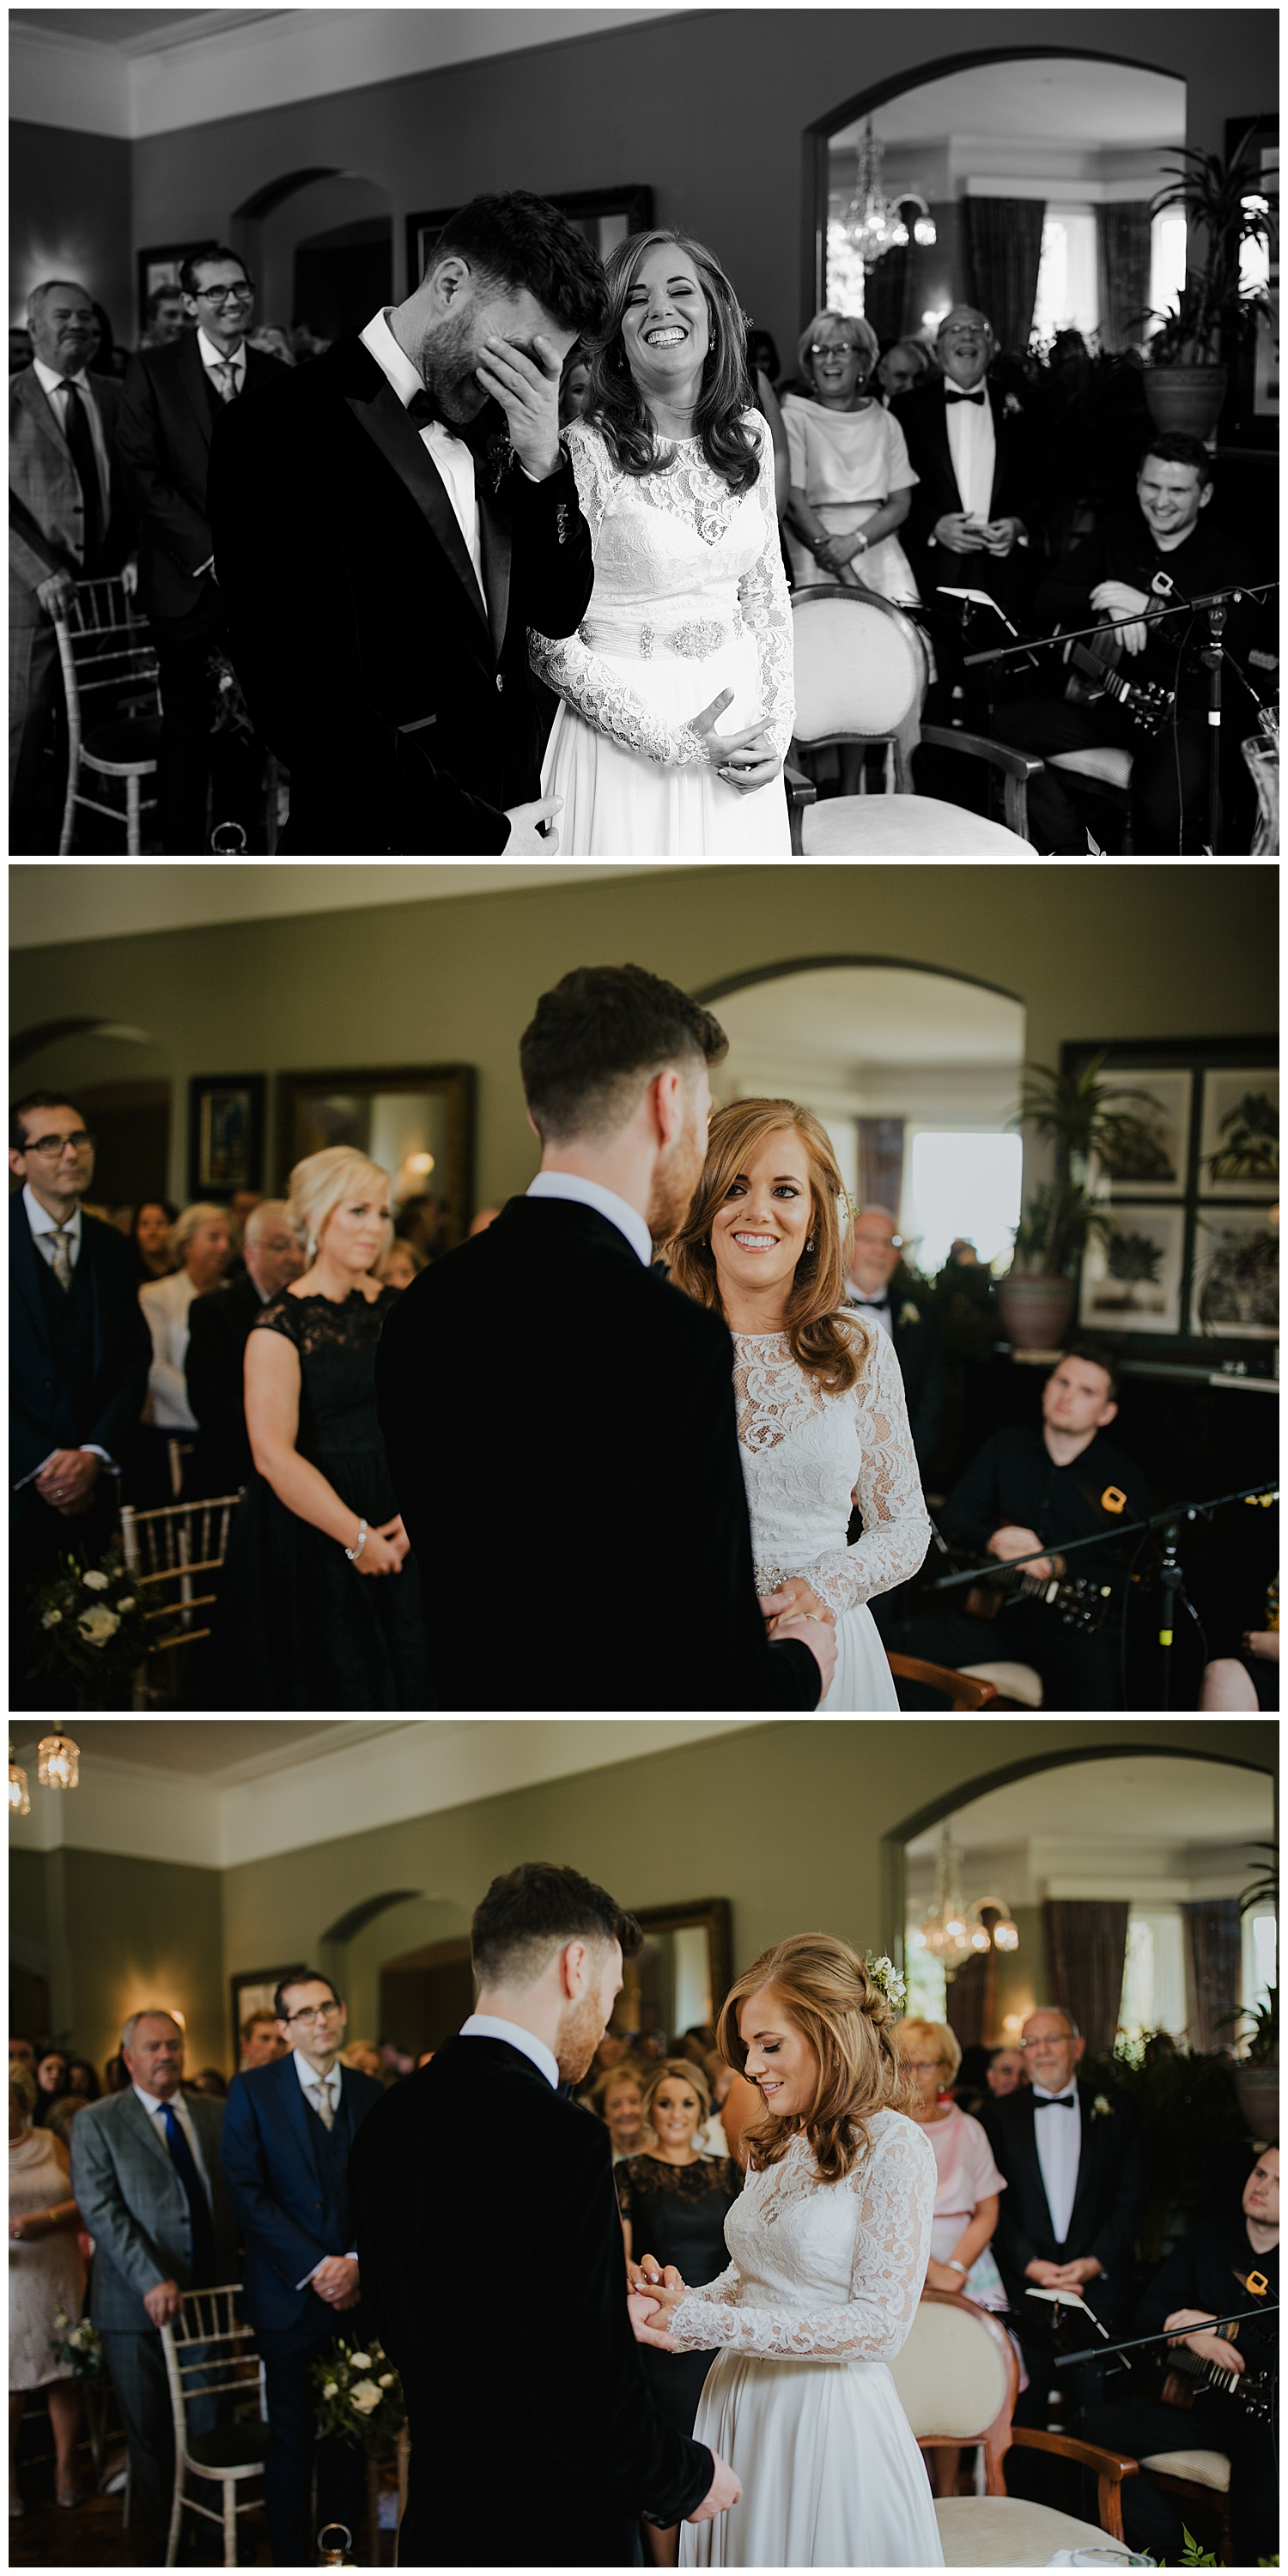 a&c_tinakilly_black_tie_wedding_photographer_livia_figueiredo_105.jpg